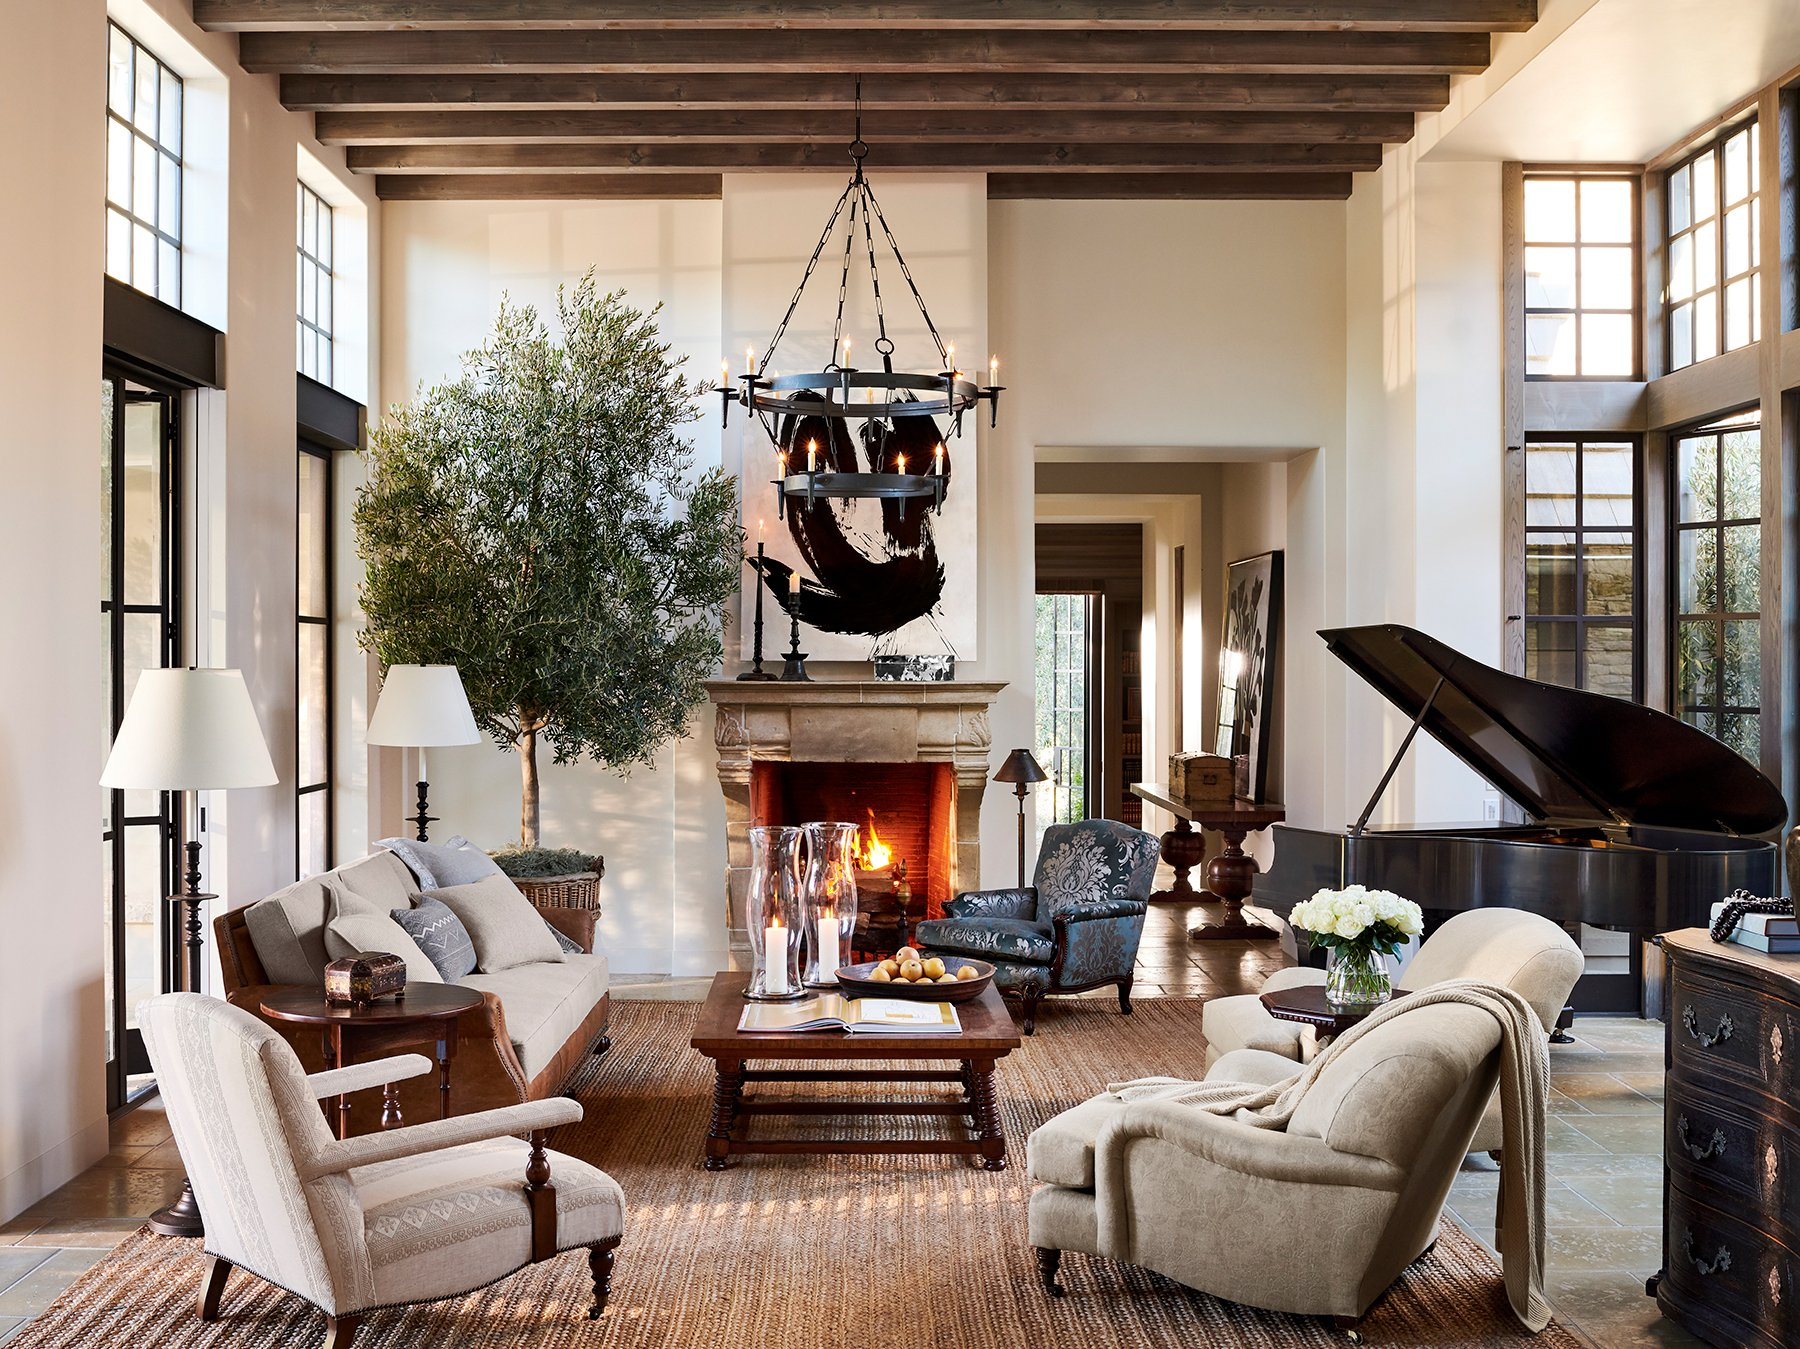 Home Decor For Sale: Ralph Lauren Home